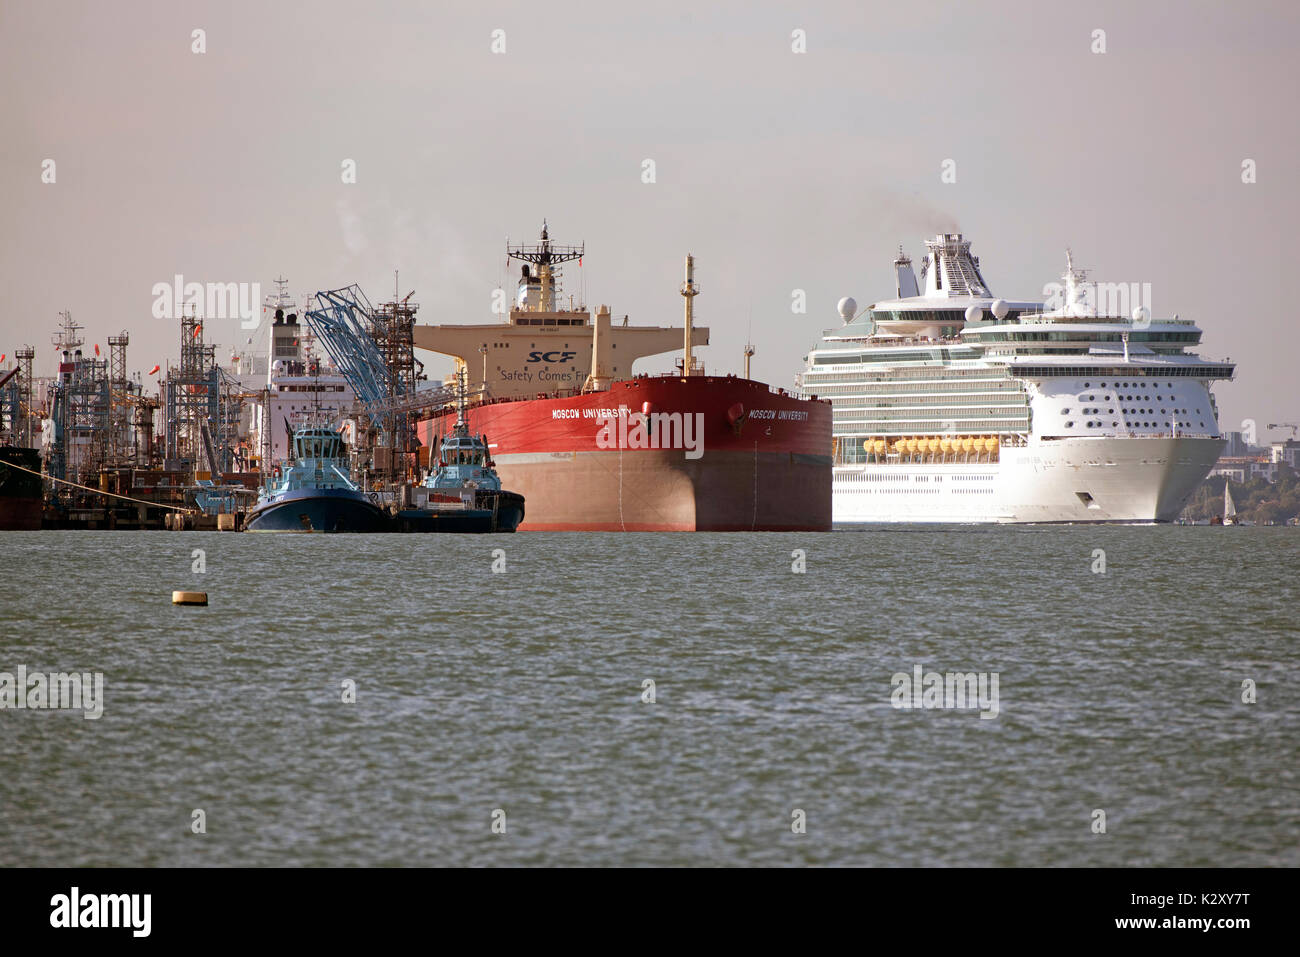 Cruise liner Navigator of the Seas passing the Russian tanker ship Moscow University alongside the Fawley Marine Terminal on Southampton Water, UK - Stock Image